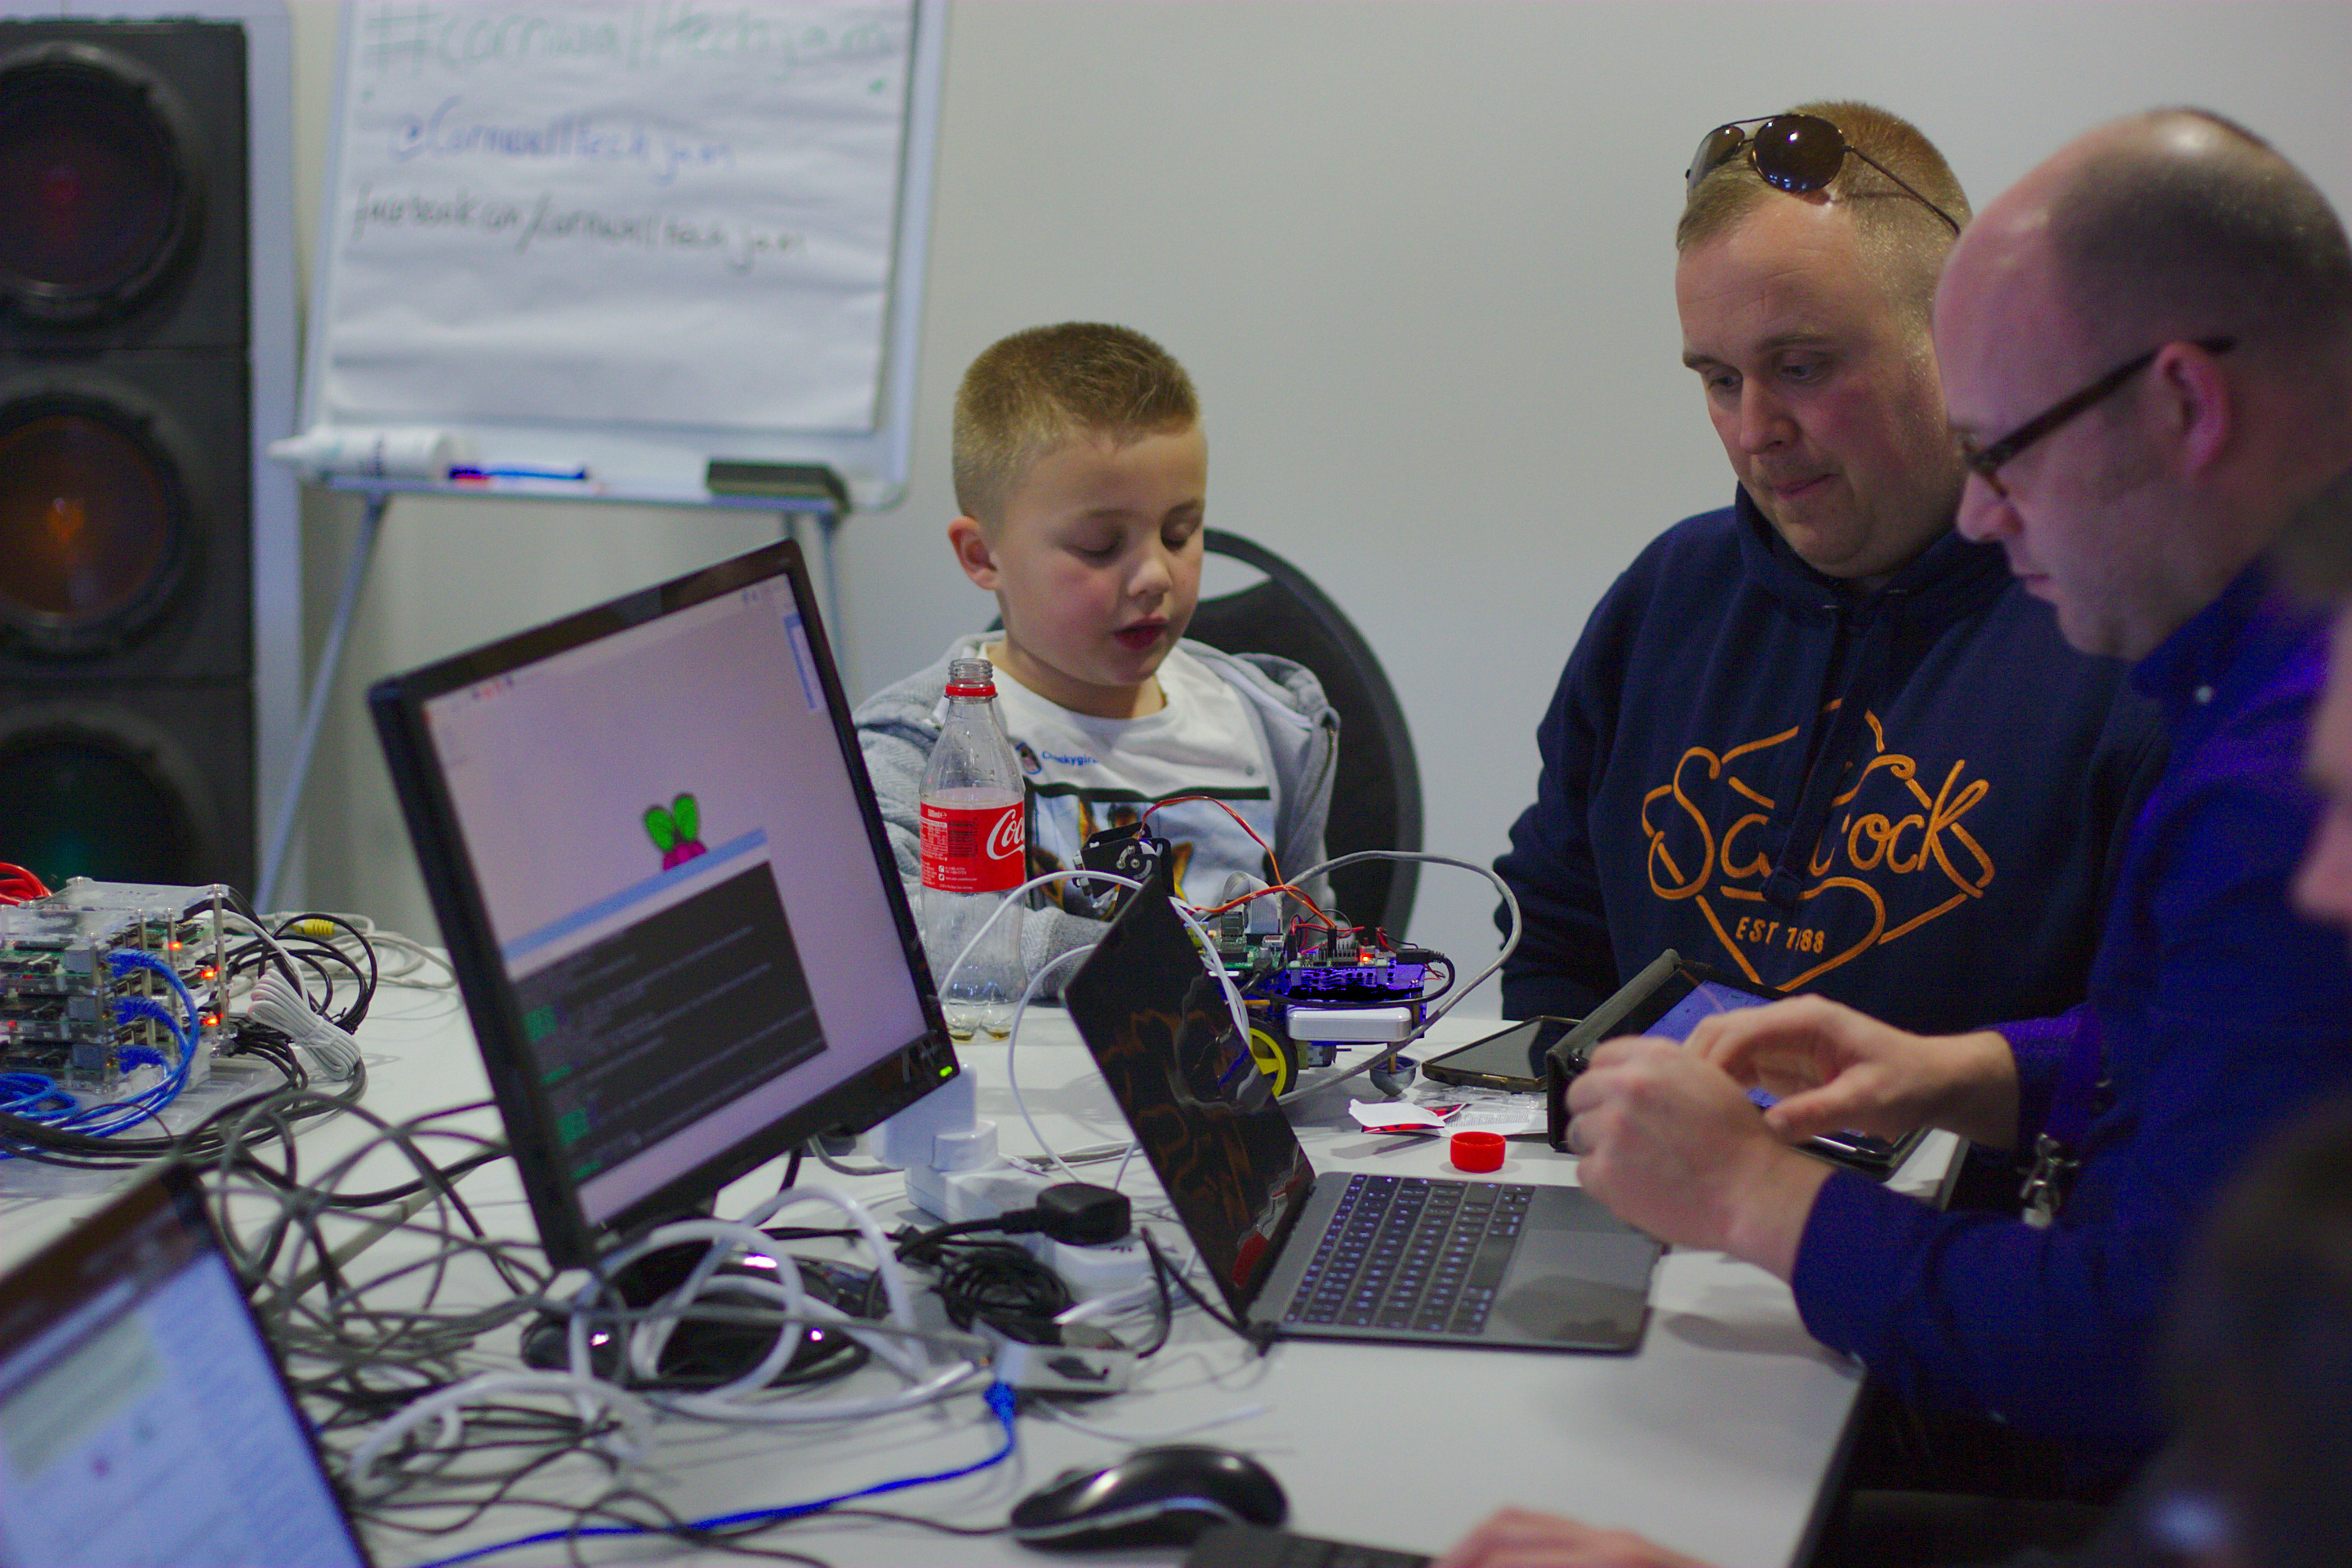 Photo from April's Tech Jam